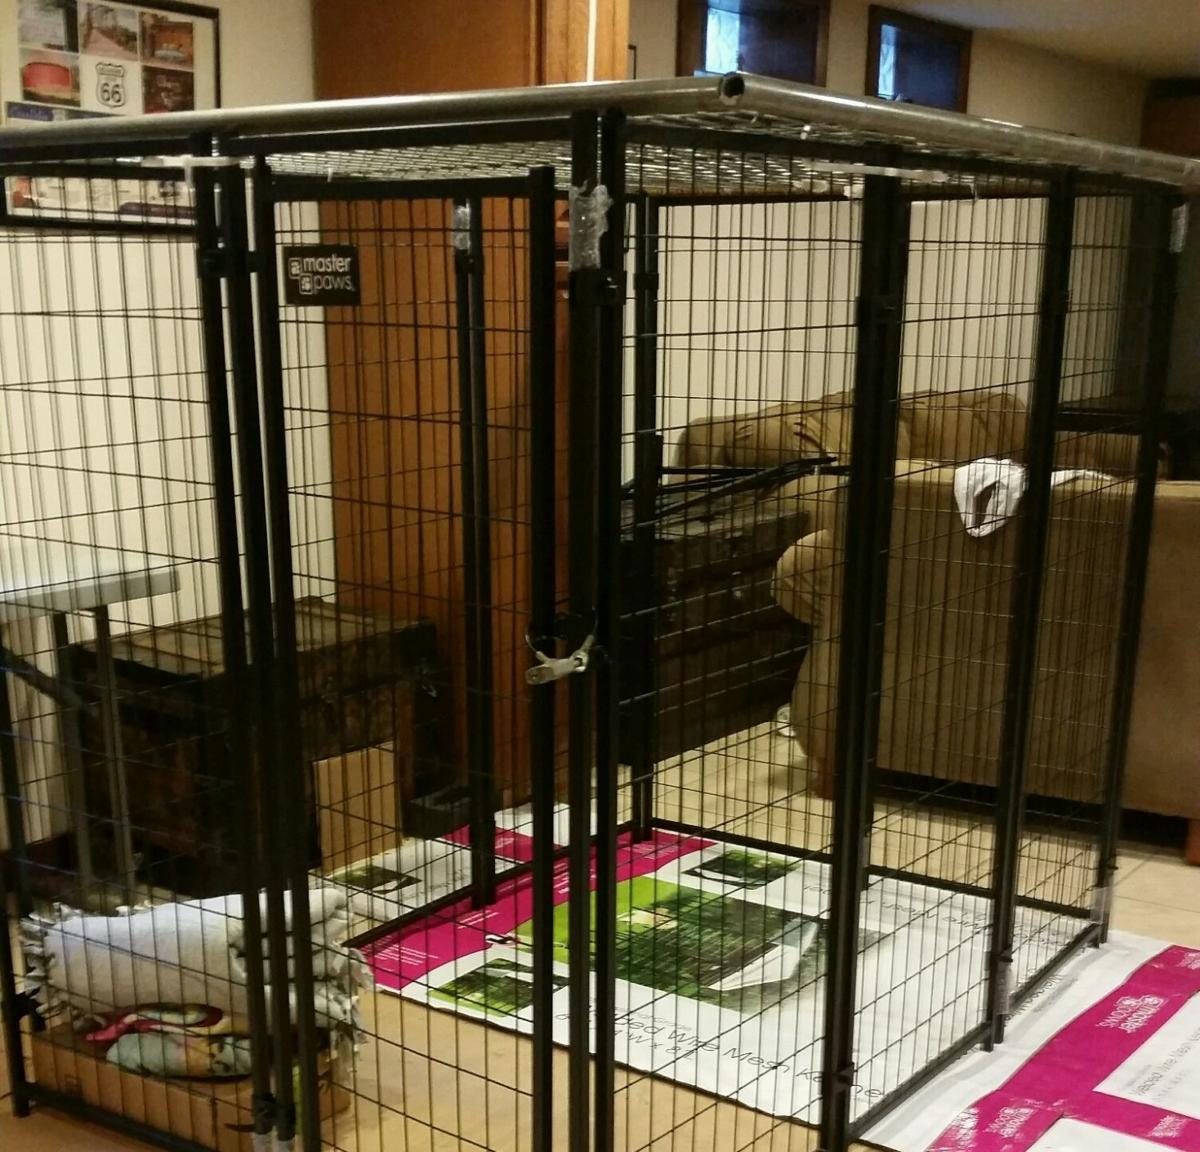 Man nets probation in caged girl case